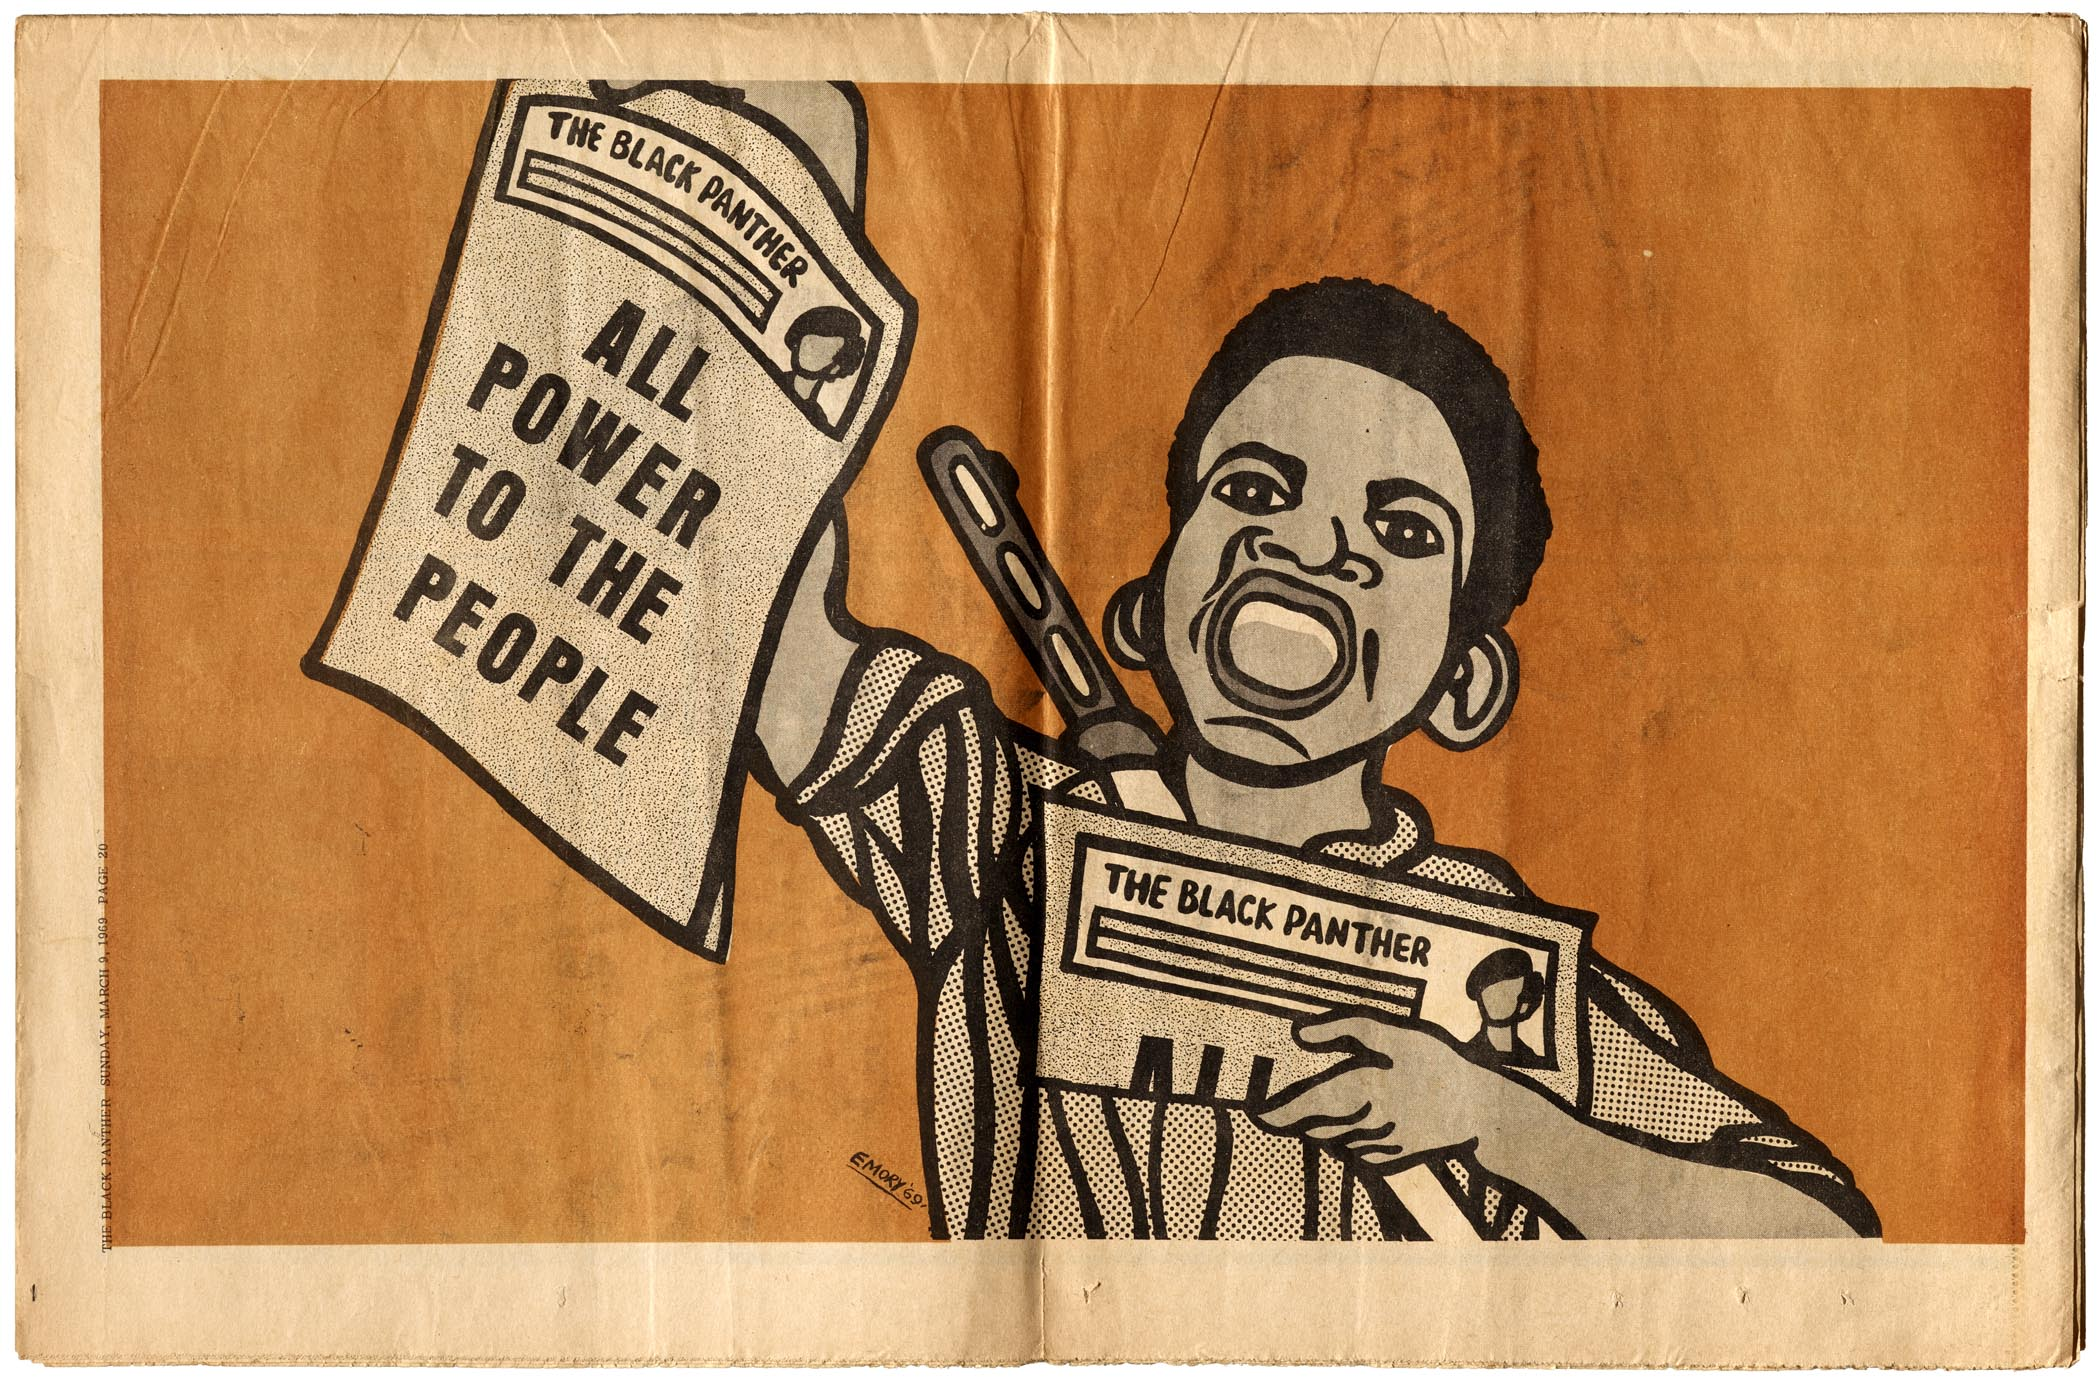 Letterform archive this just in emory douglas the black panther the black panther march 8 1969 malvernweather Images